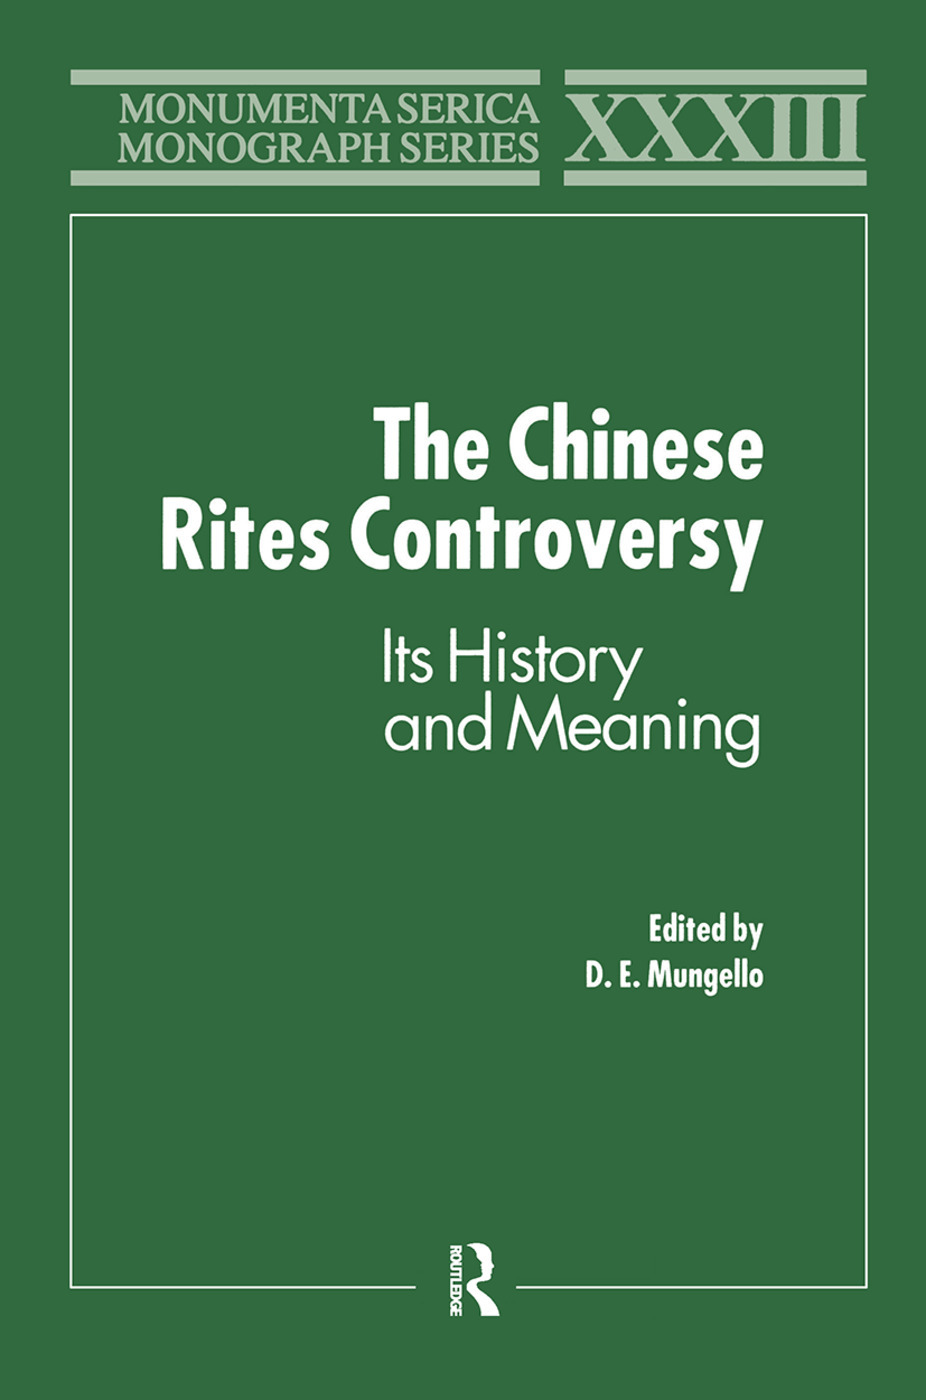 The Chinese Rites Controversy: Its History and Meaning - 1st Edition